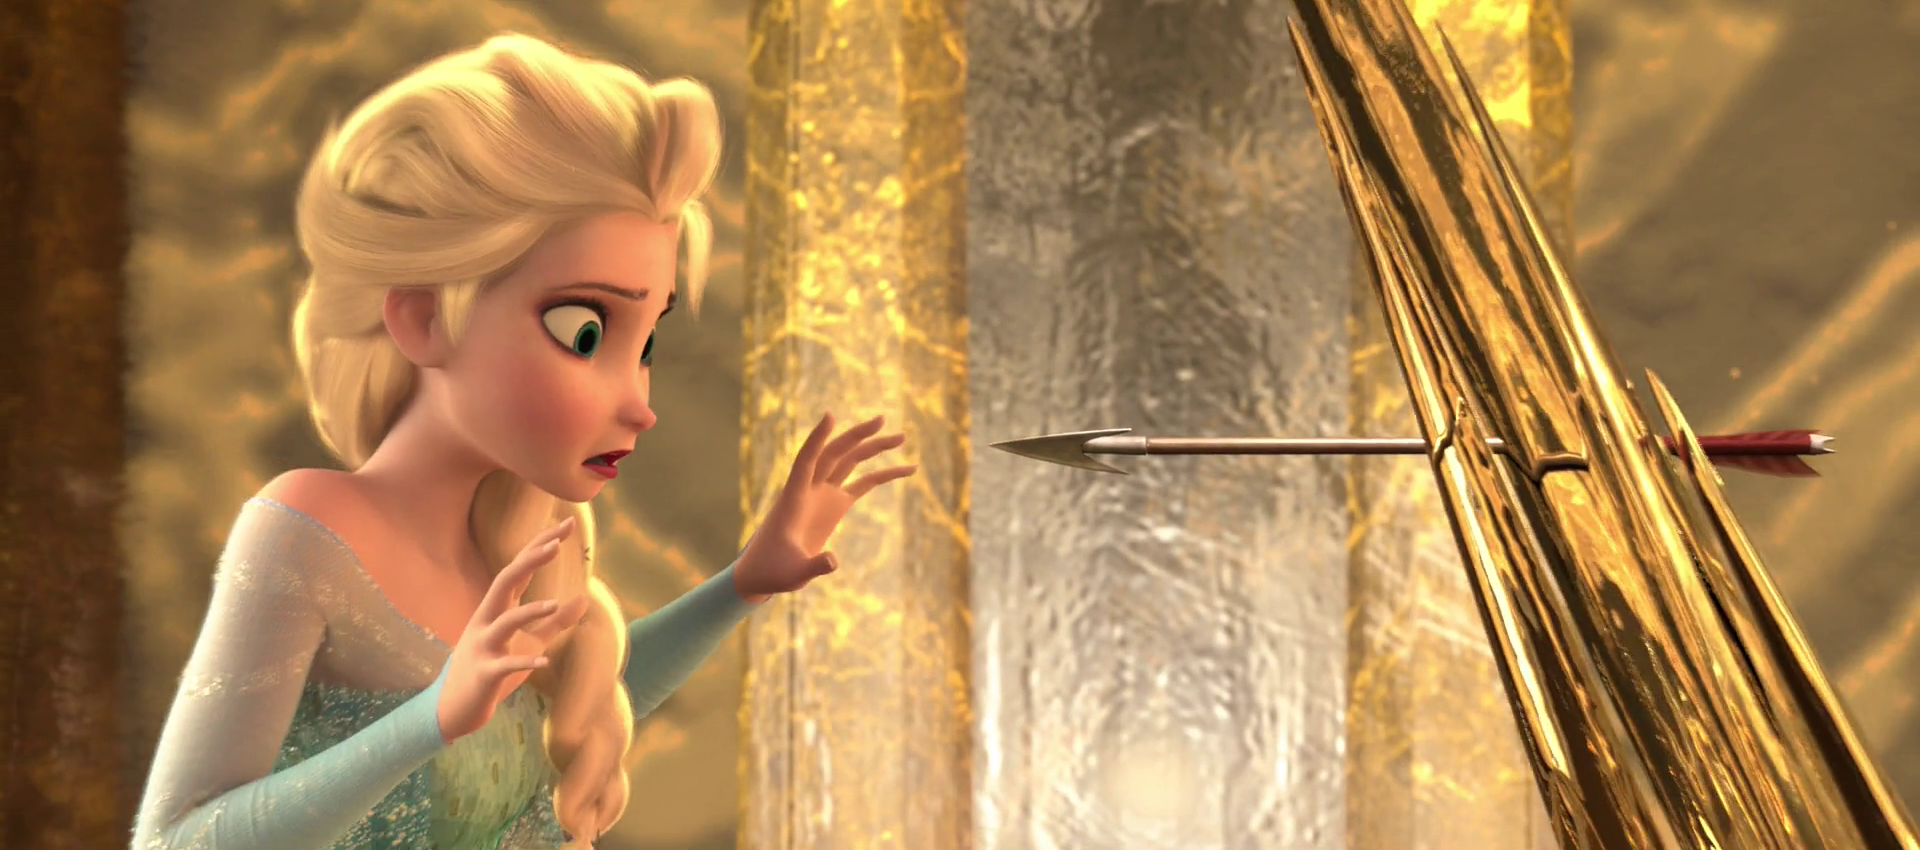 File:Elsa Snow Queen.png